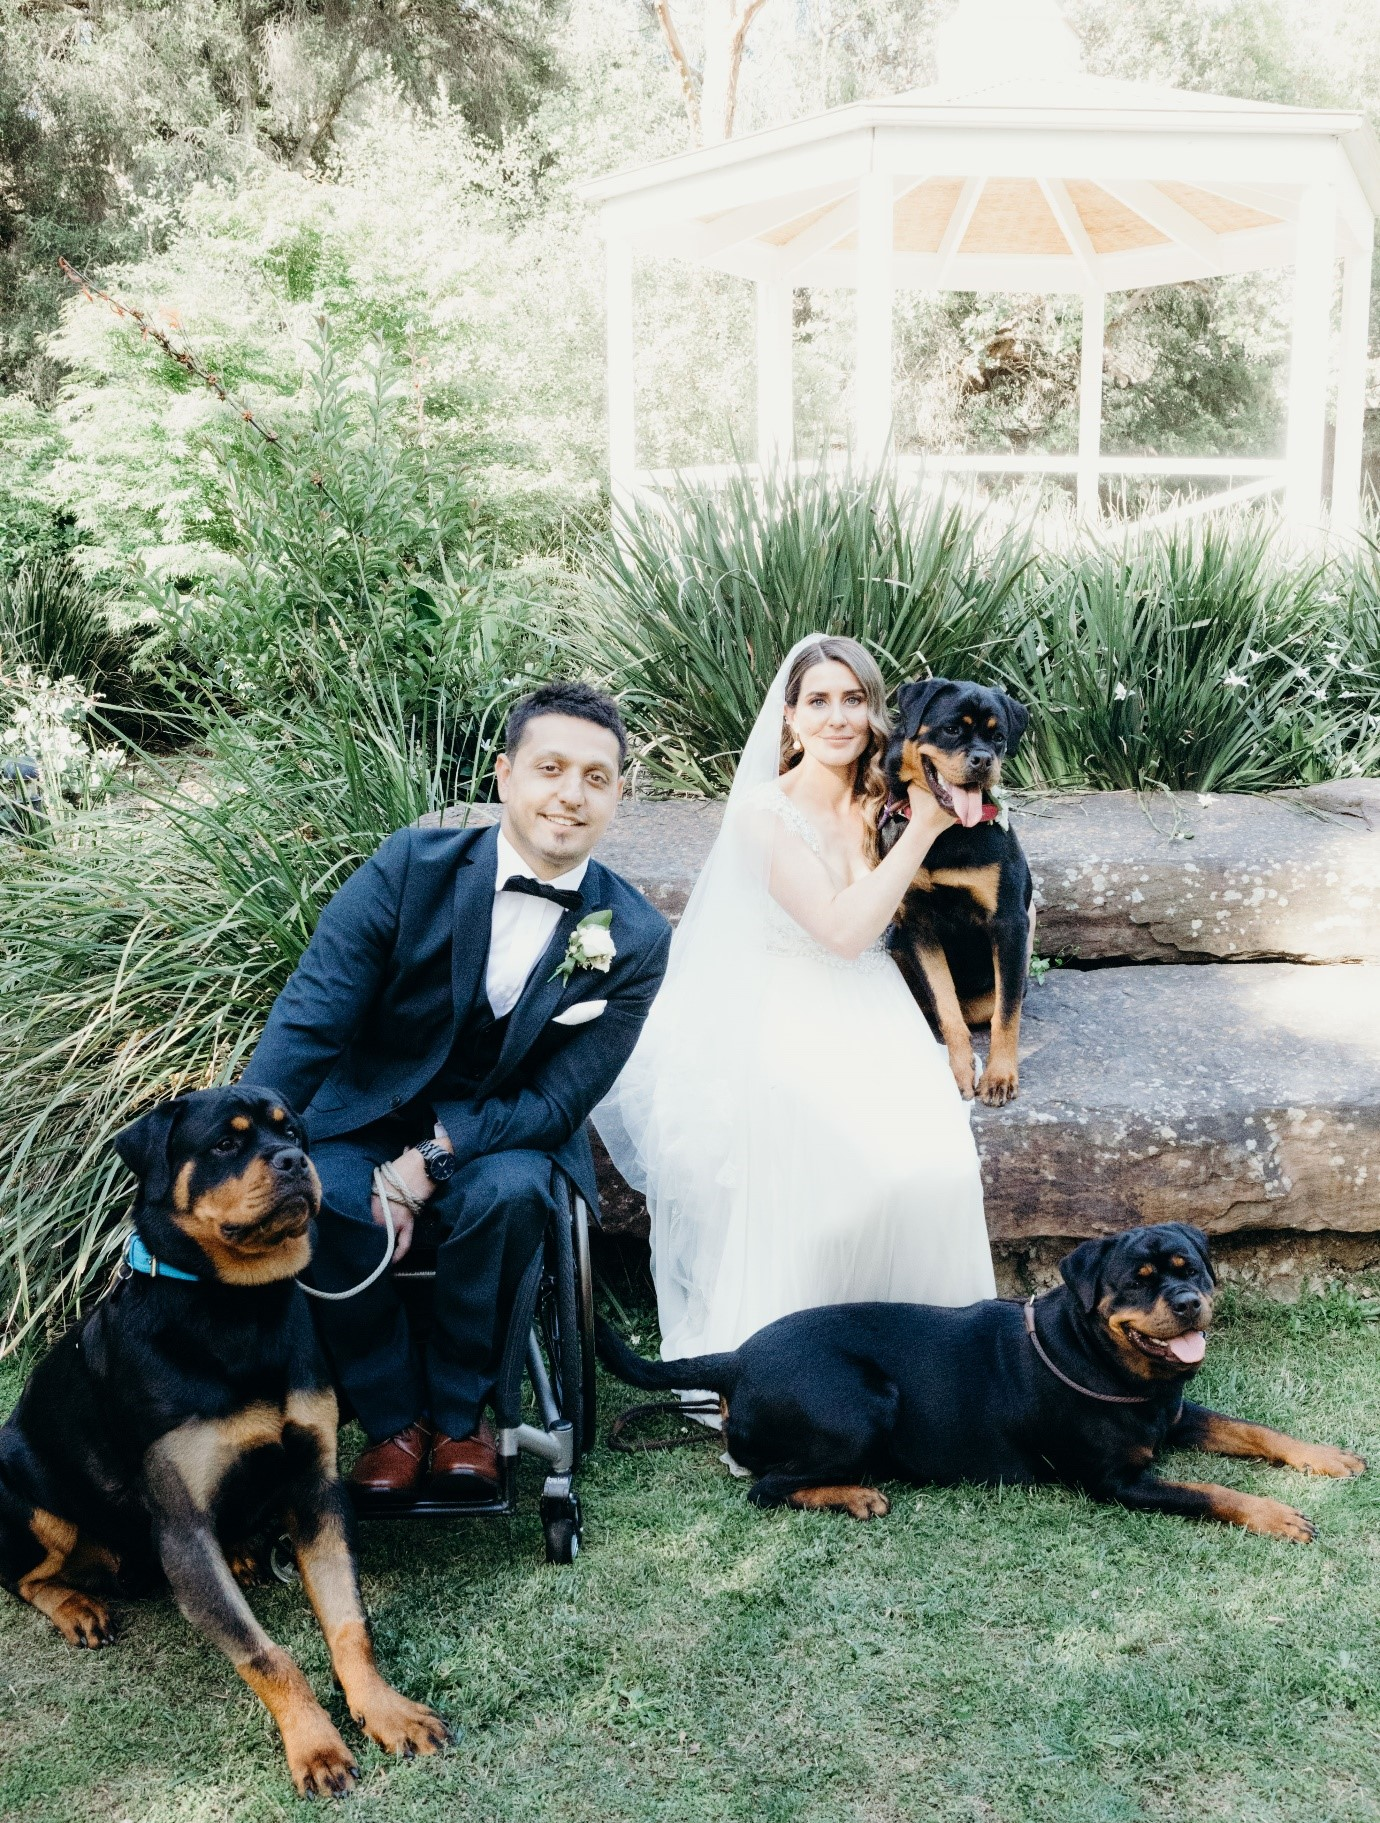 Julie Byrne Celebrant - Potters Reception - Crystal and Kadir's Wedding with their Puppies